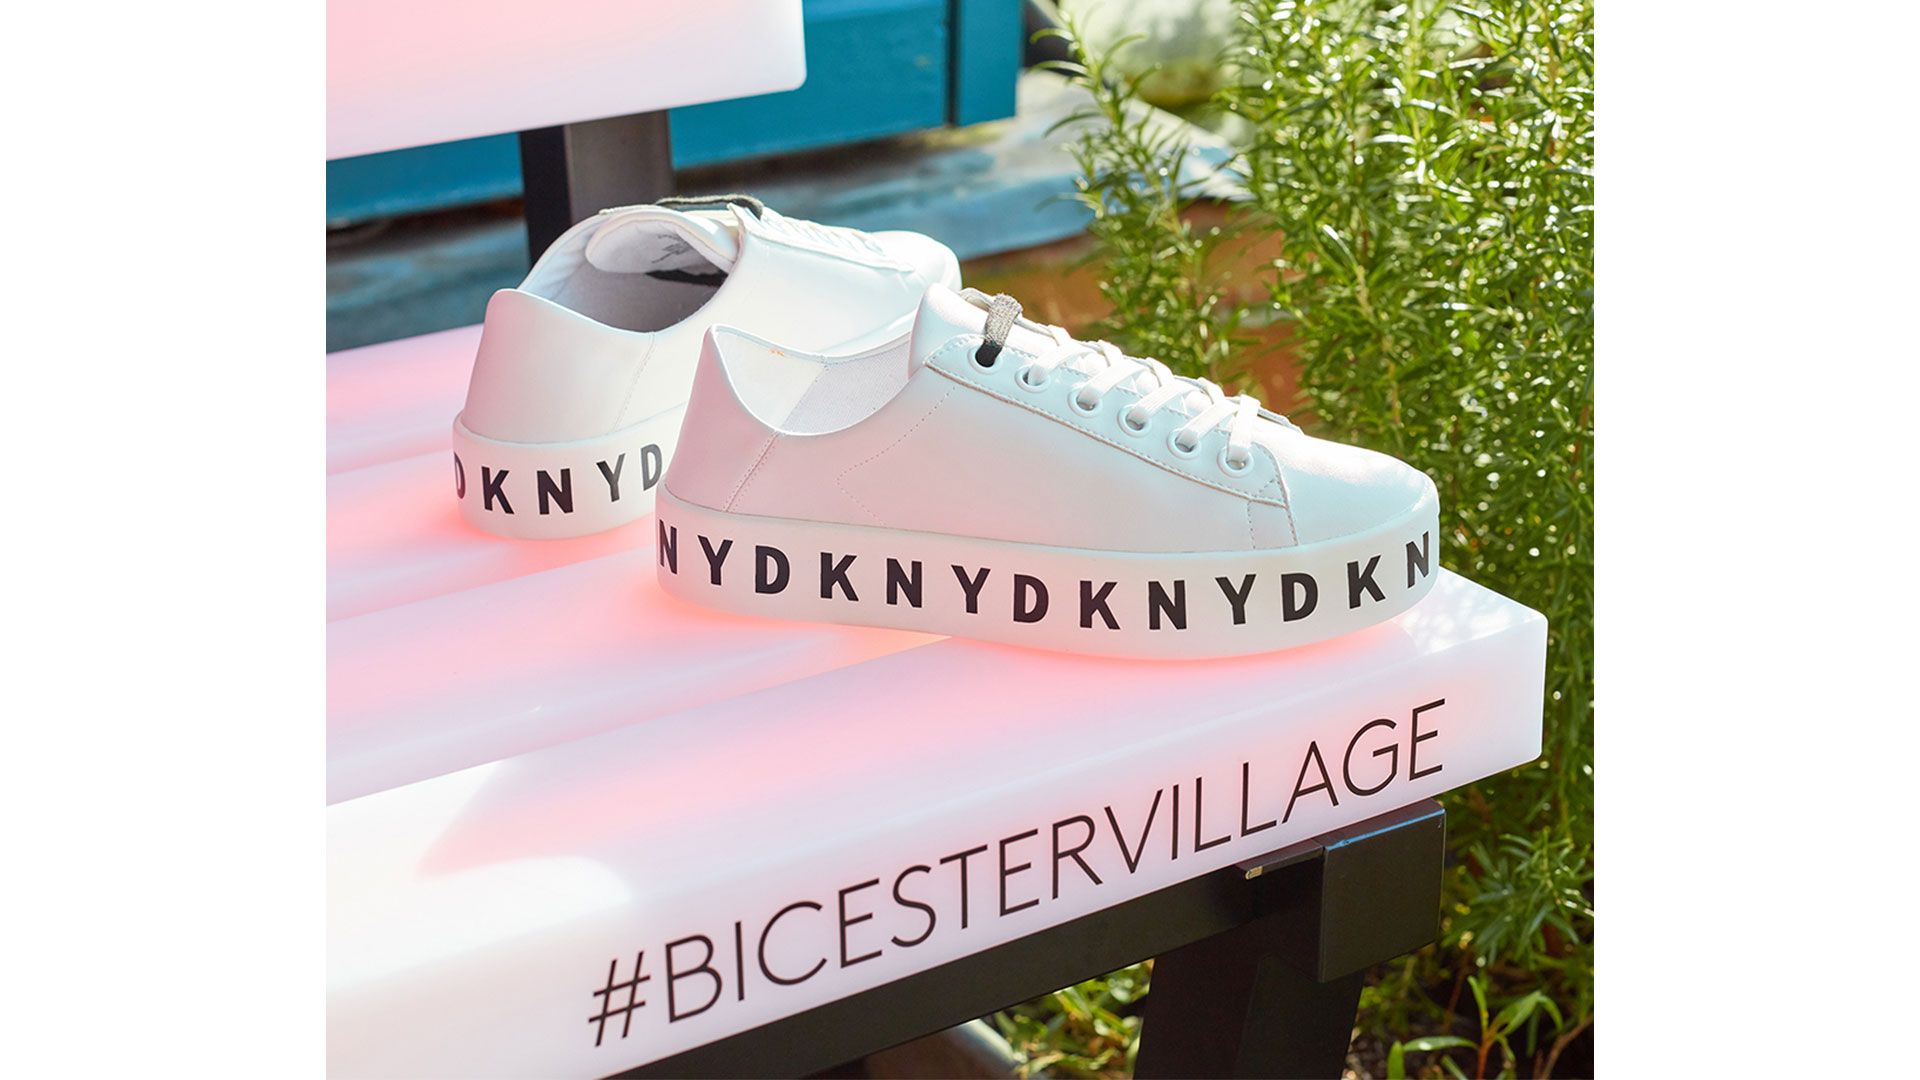 DKNY trainers at Bicester Village